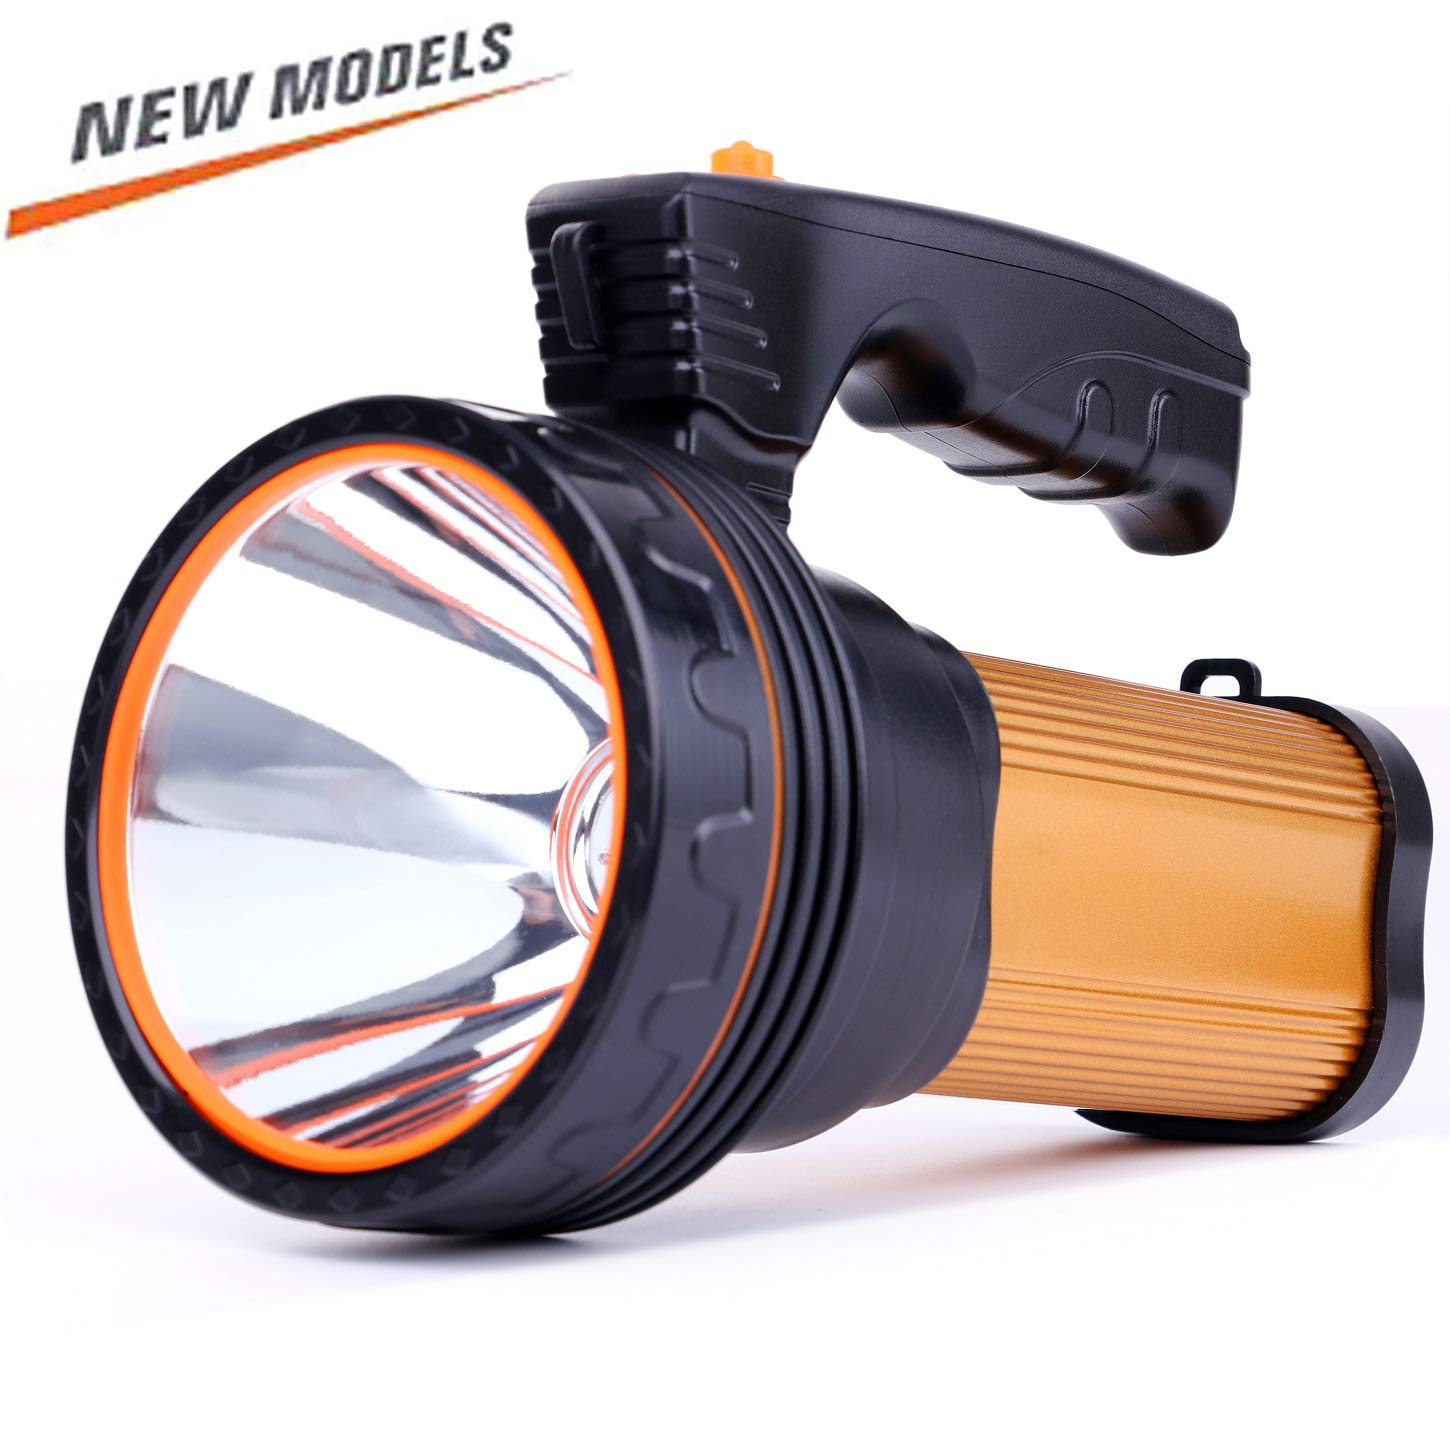 ROMER LED Rechargeable Handheld Searchlight High-power Super Bright 9000 MA 6000 LUMENS CREE Tactical Spotlight Torch Lantern Flashlight (Gold)